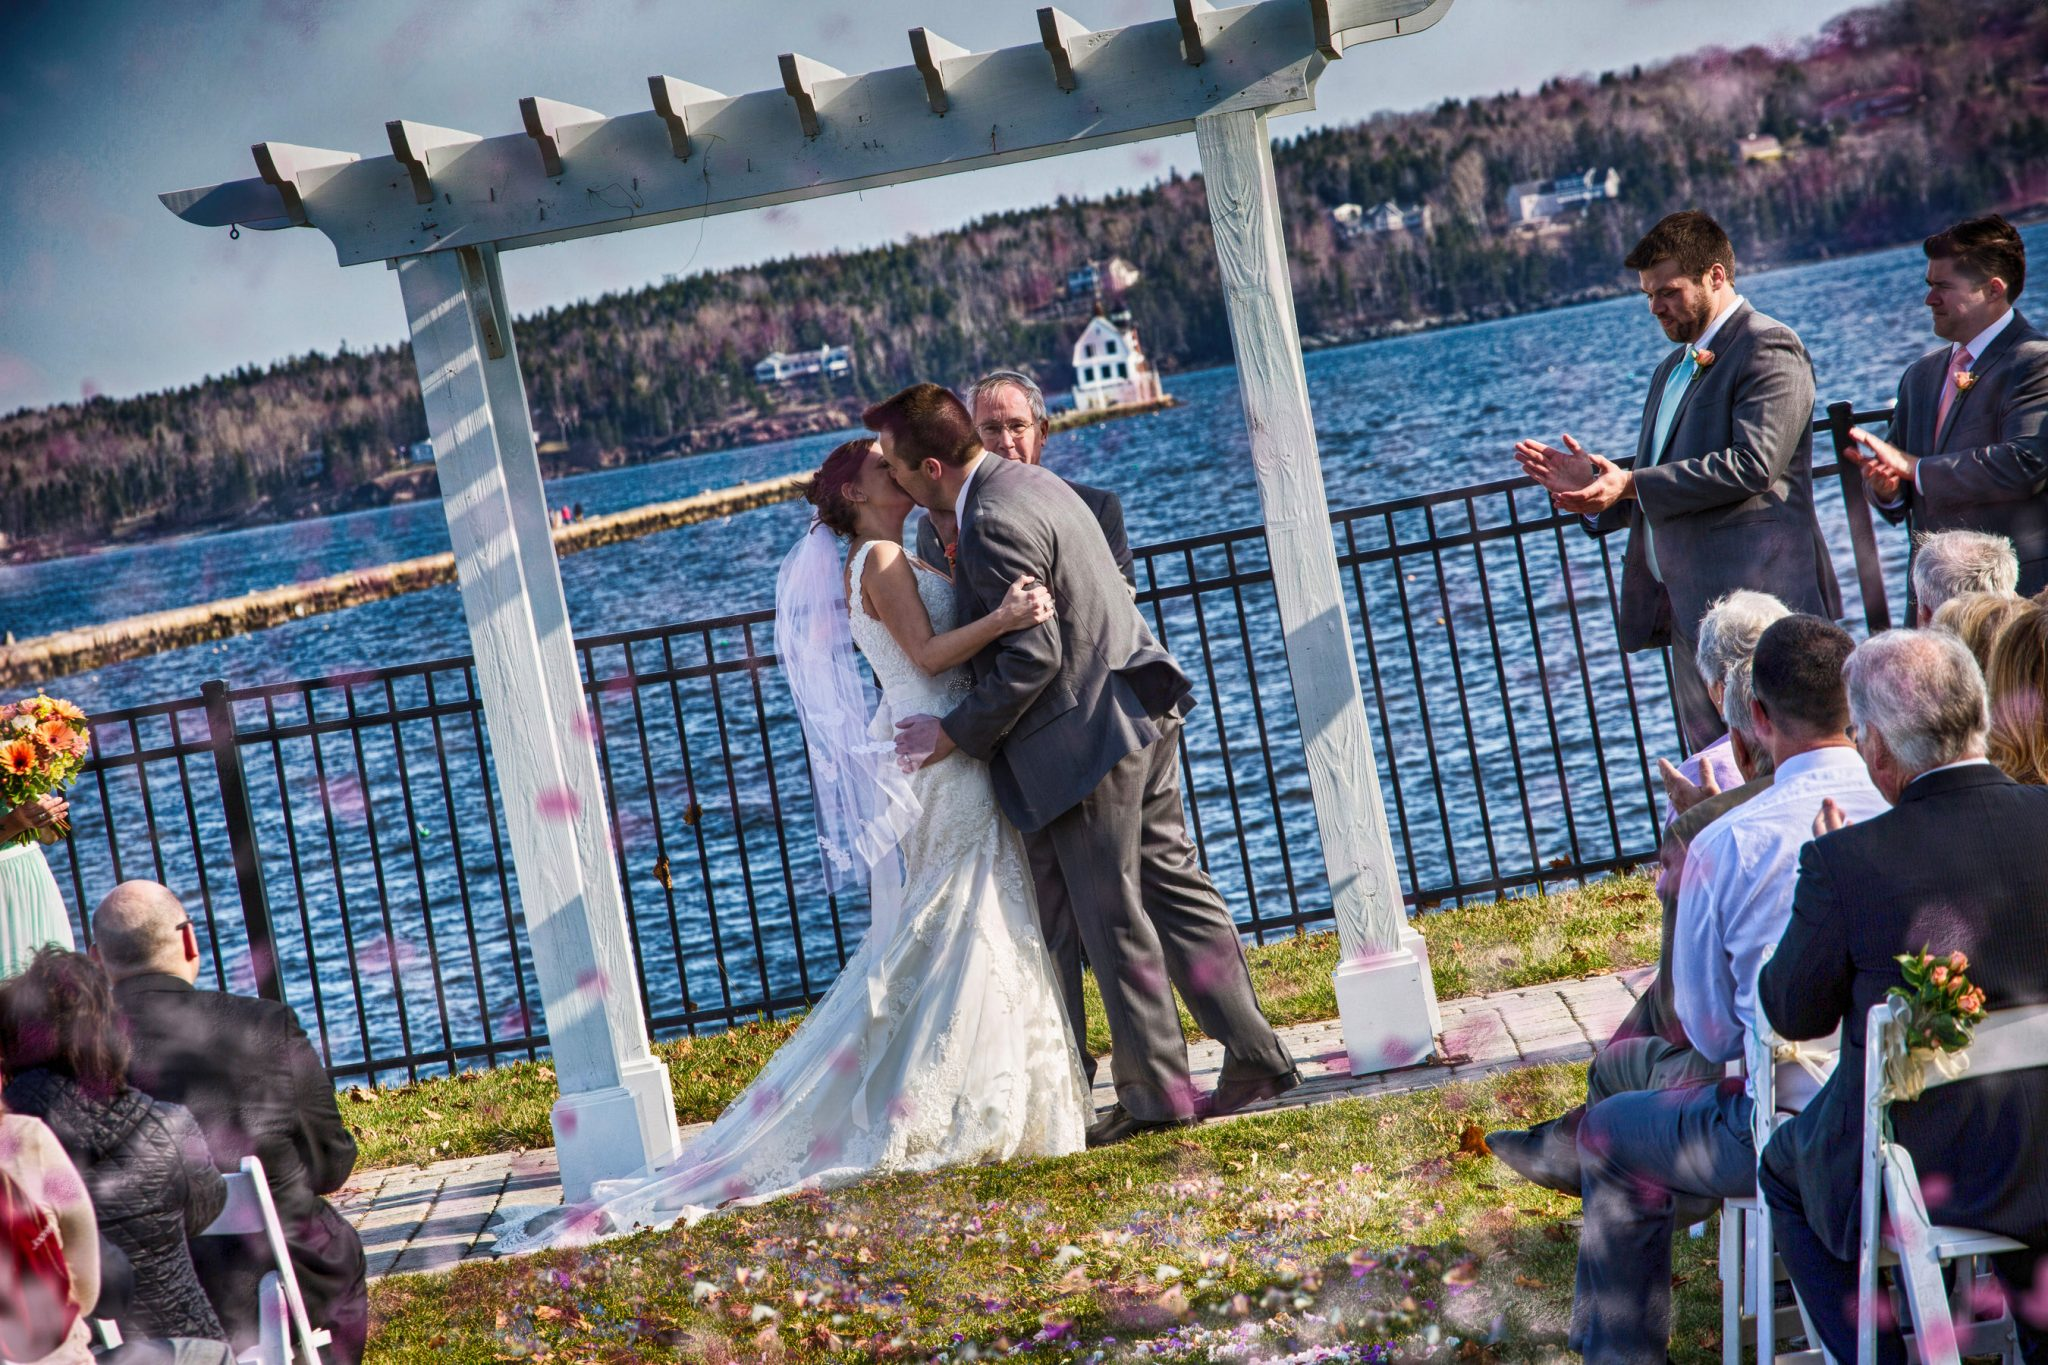 Samoset Resort, Rockland, Maine.  The first kiss at the wedding.